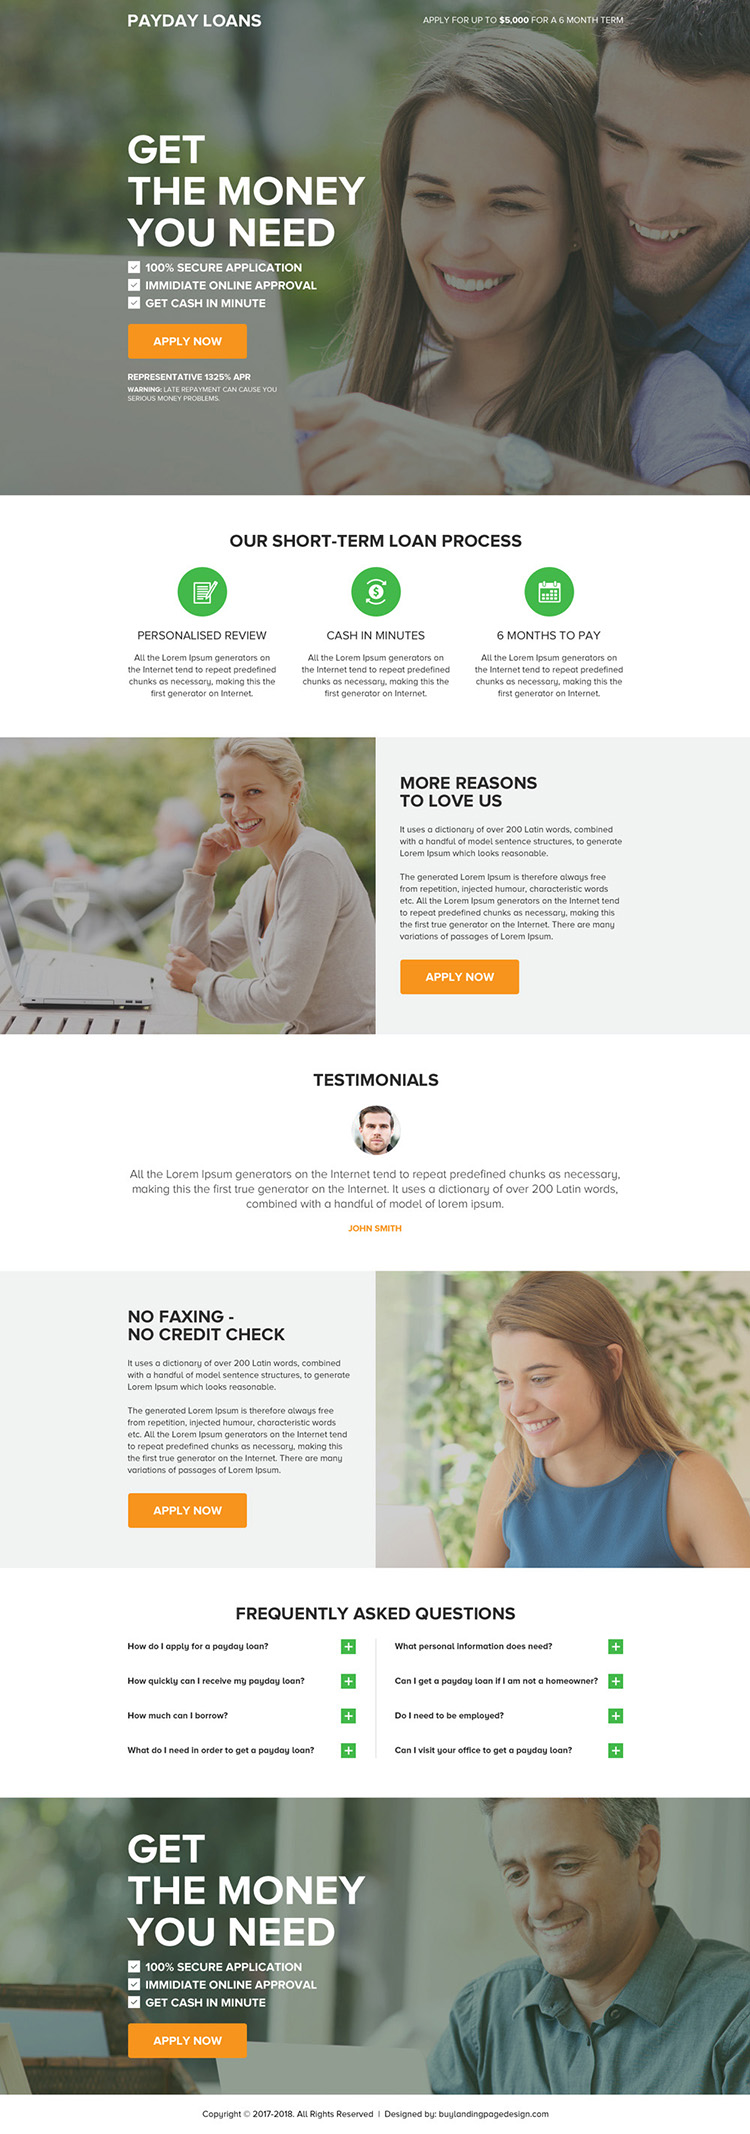 professional payday loan click through landing page design